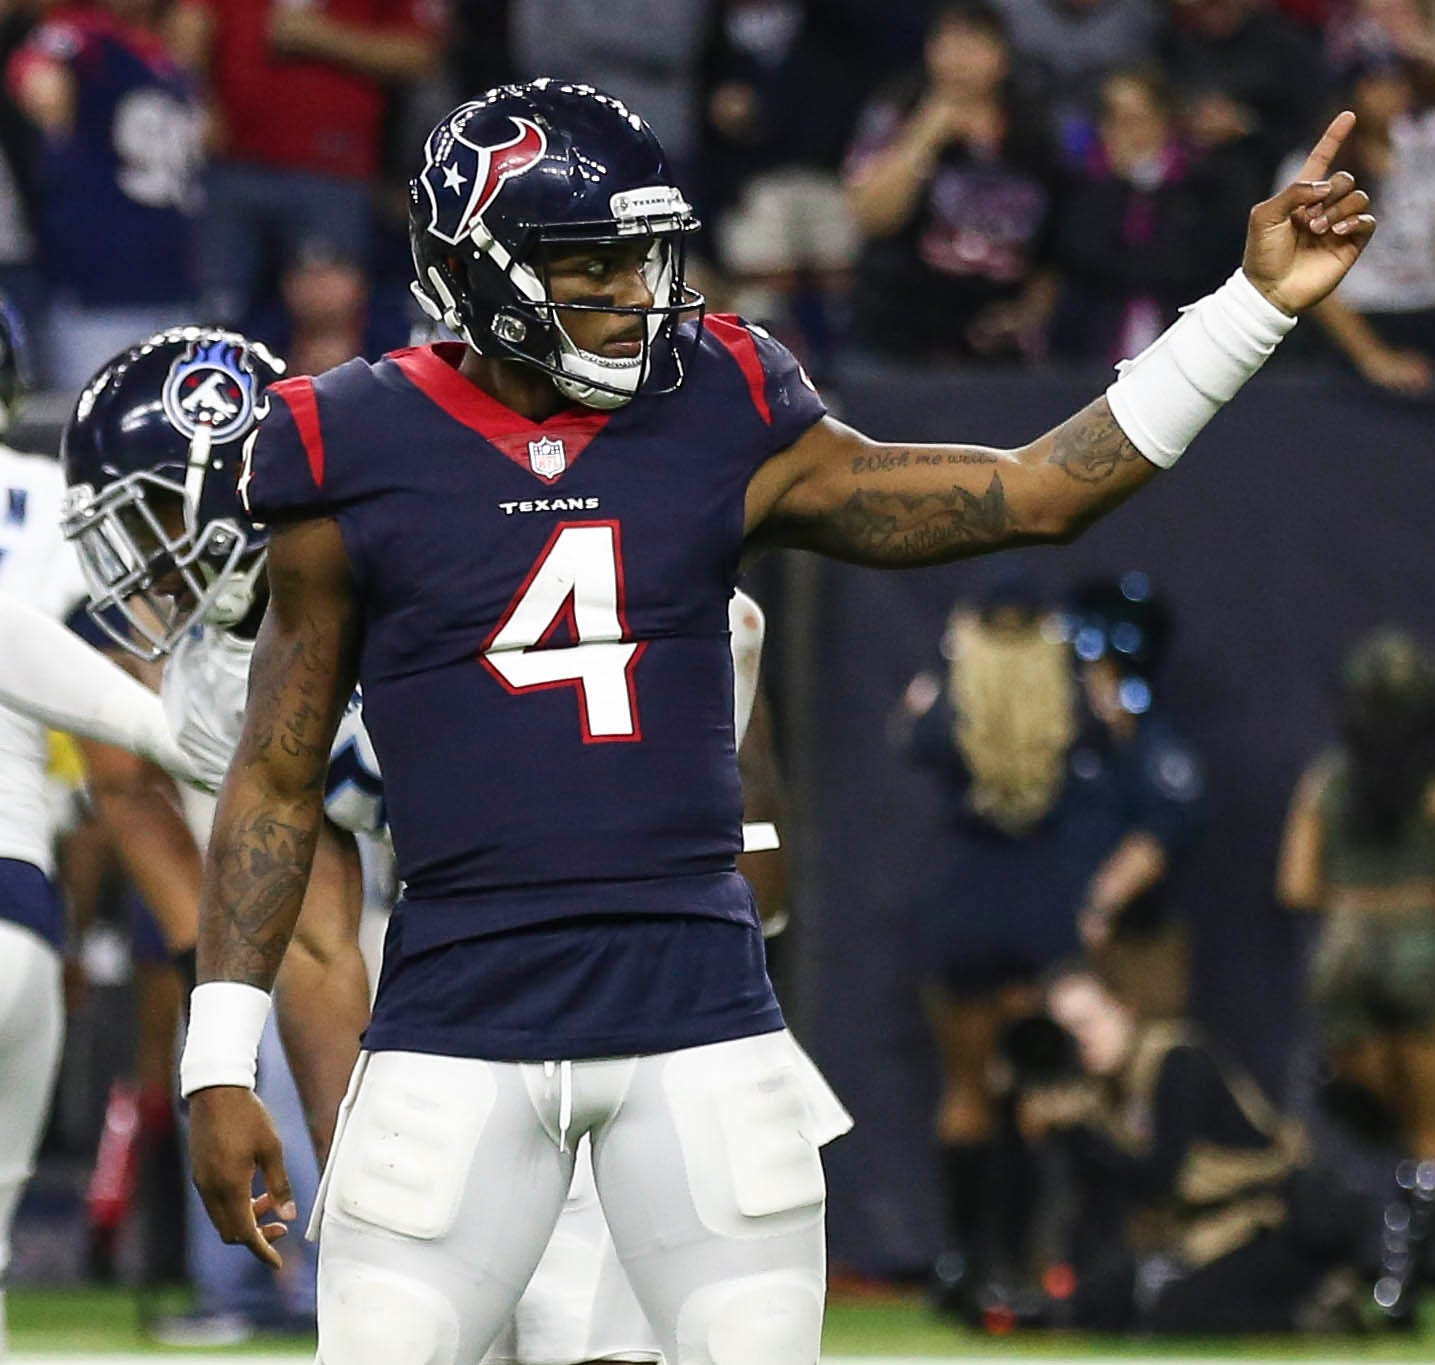 Houston Texans quarterback Deshaun Watson motions for a first down during the fourth quarter against the Tennessee Titans at NRG Stadium.